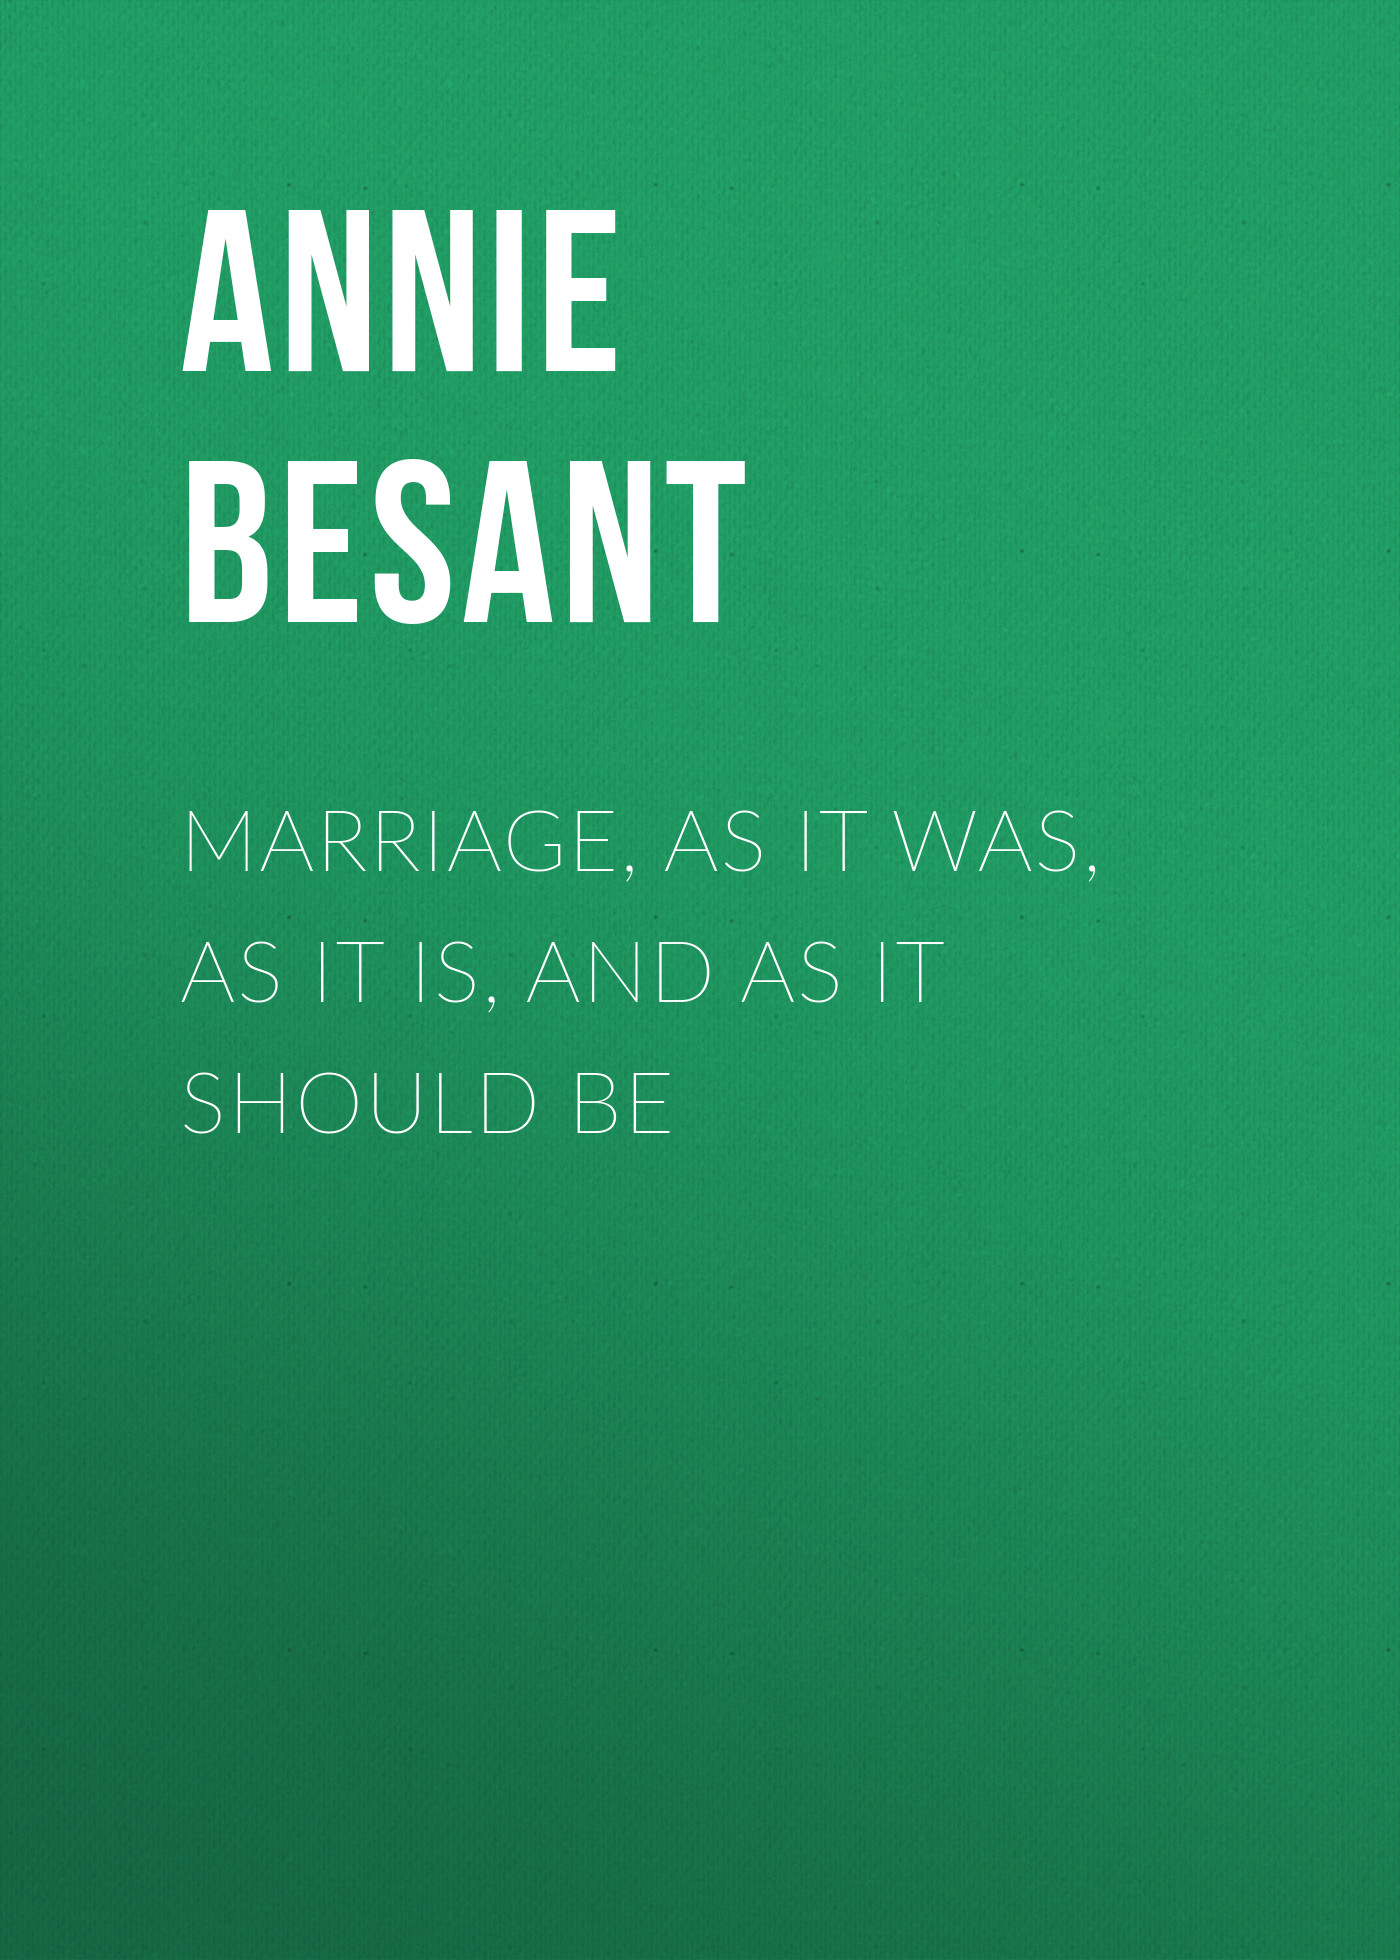 Annie Besant Marriage, As It Was, As It Is, And As It Should Be as it is hamburg